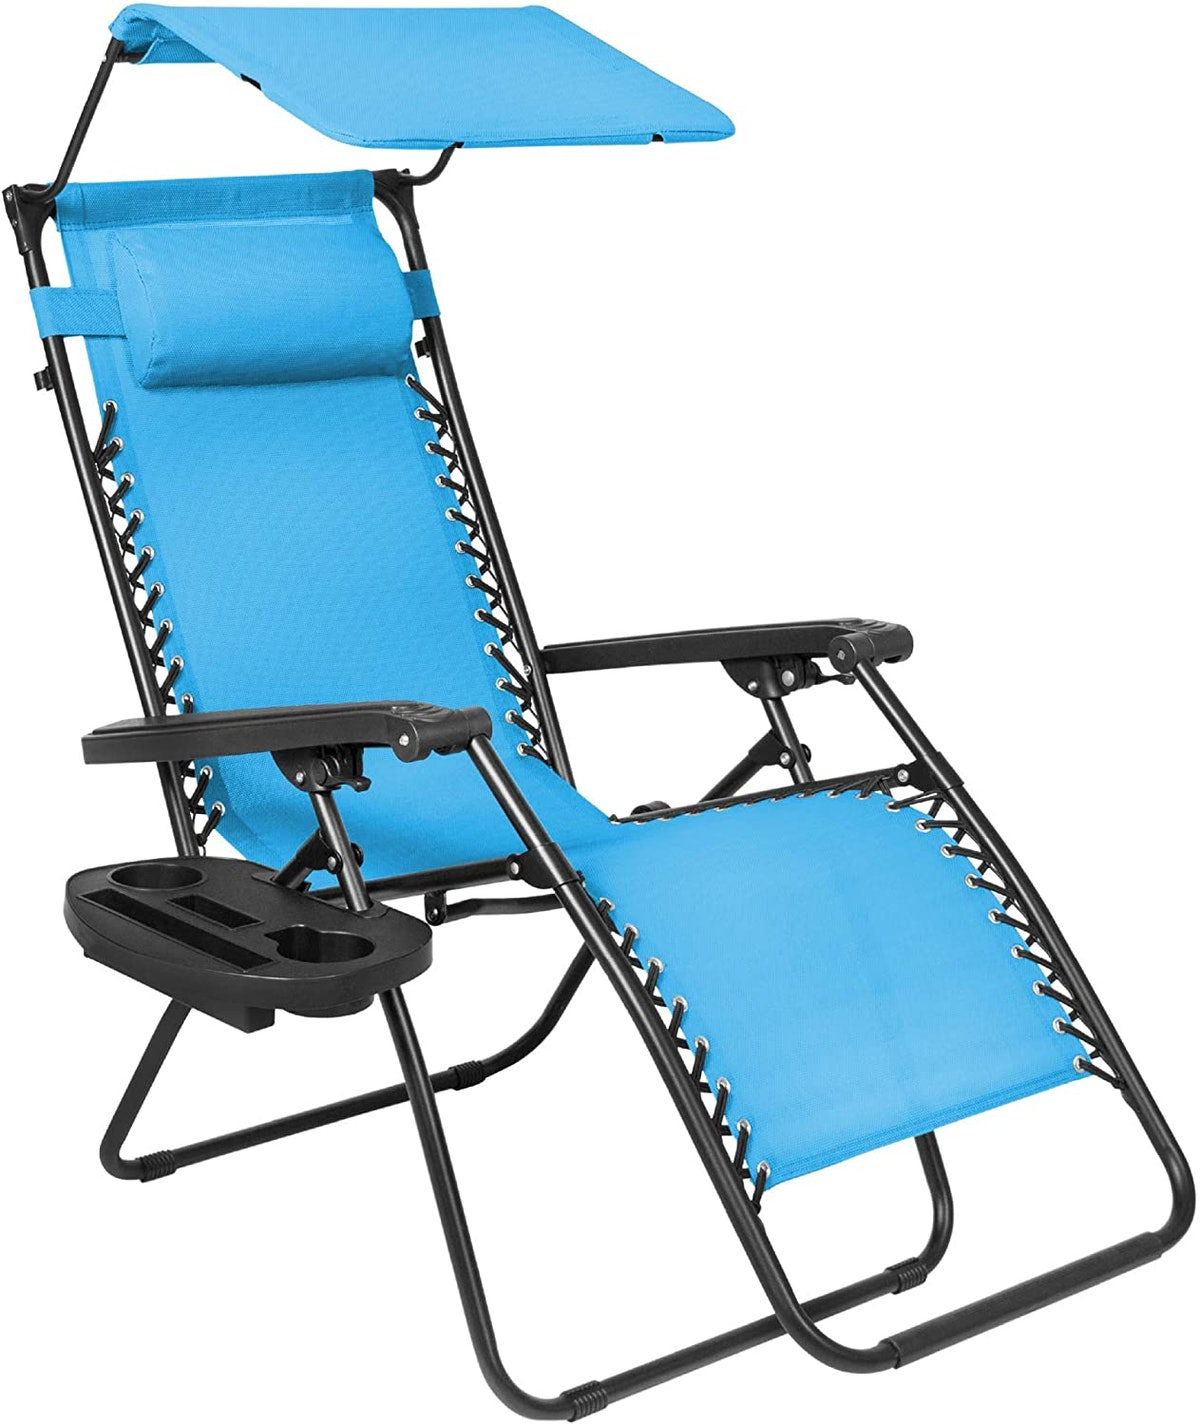 Best Choice Products Zero Gravity Recliner With Canopy